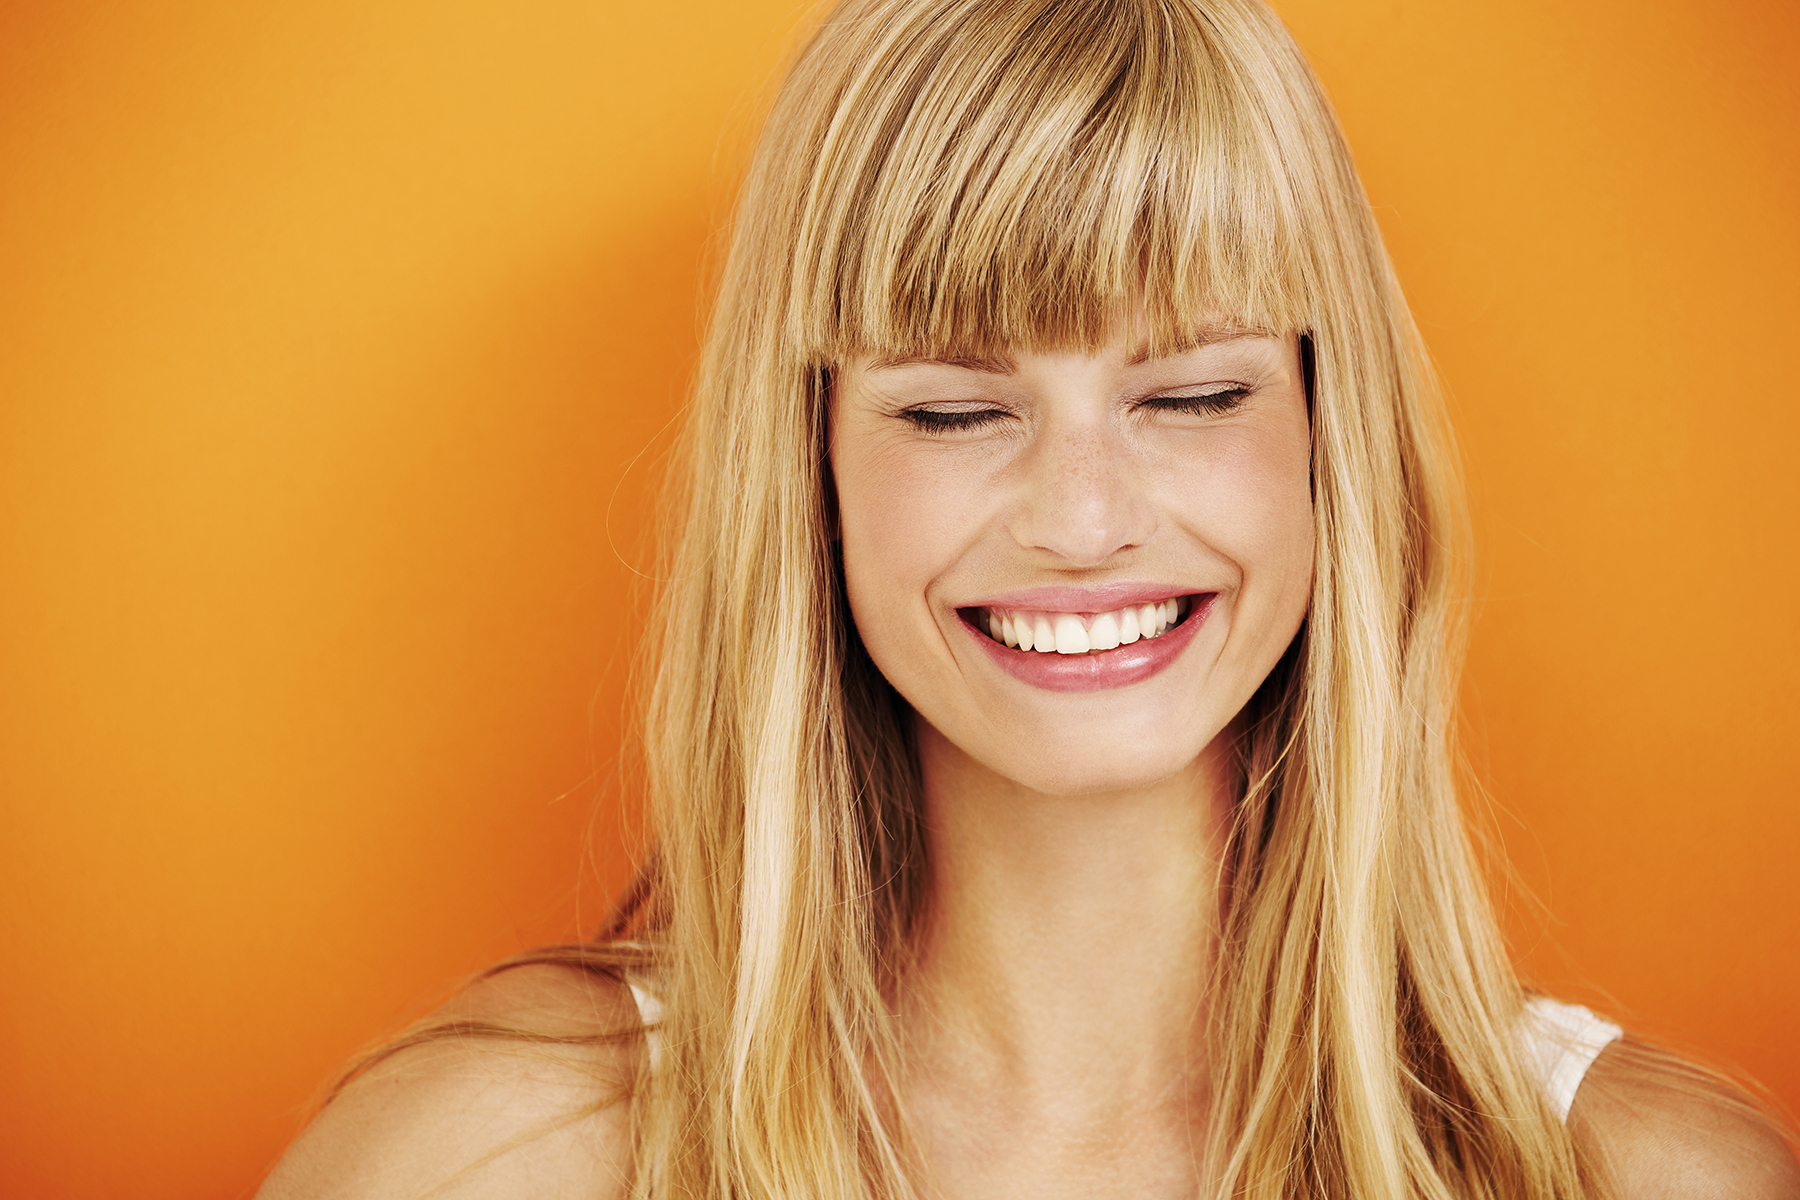 Laughing woman with bleached blonde hair